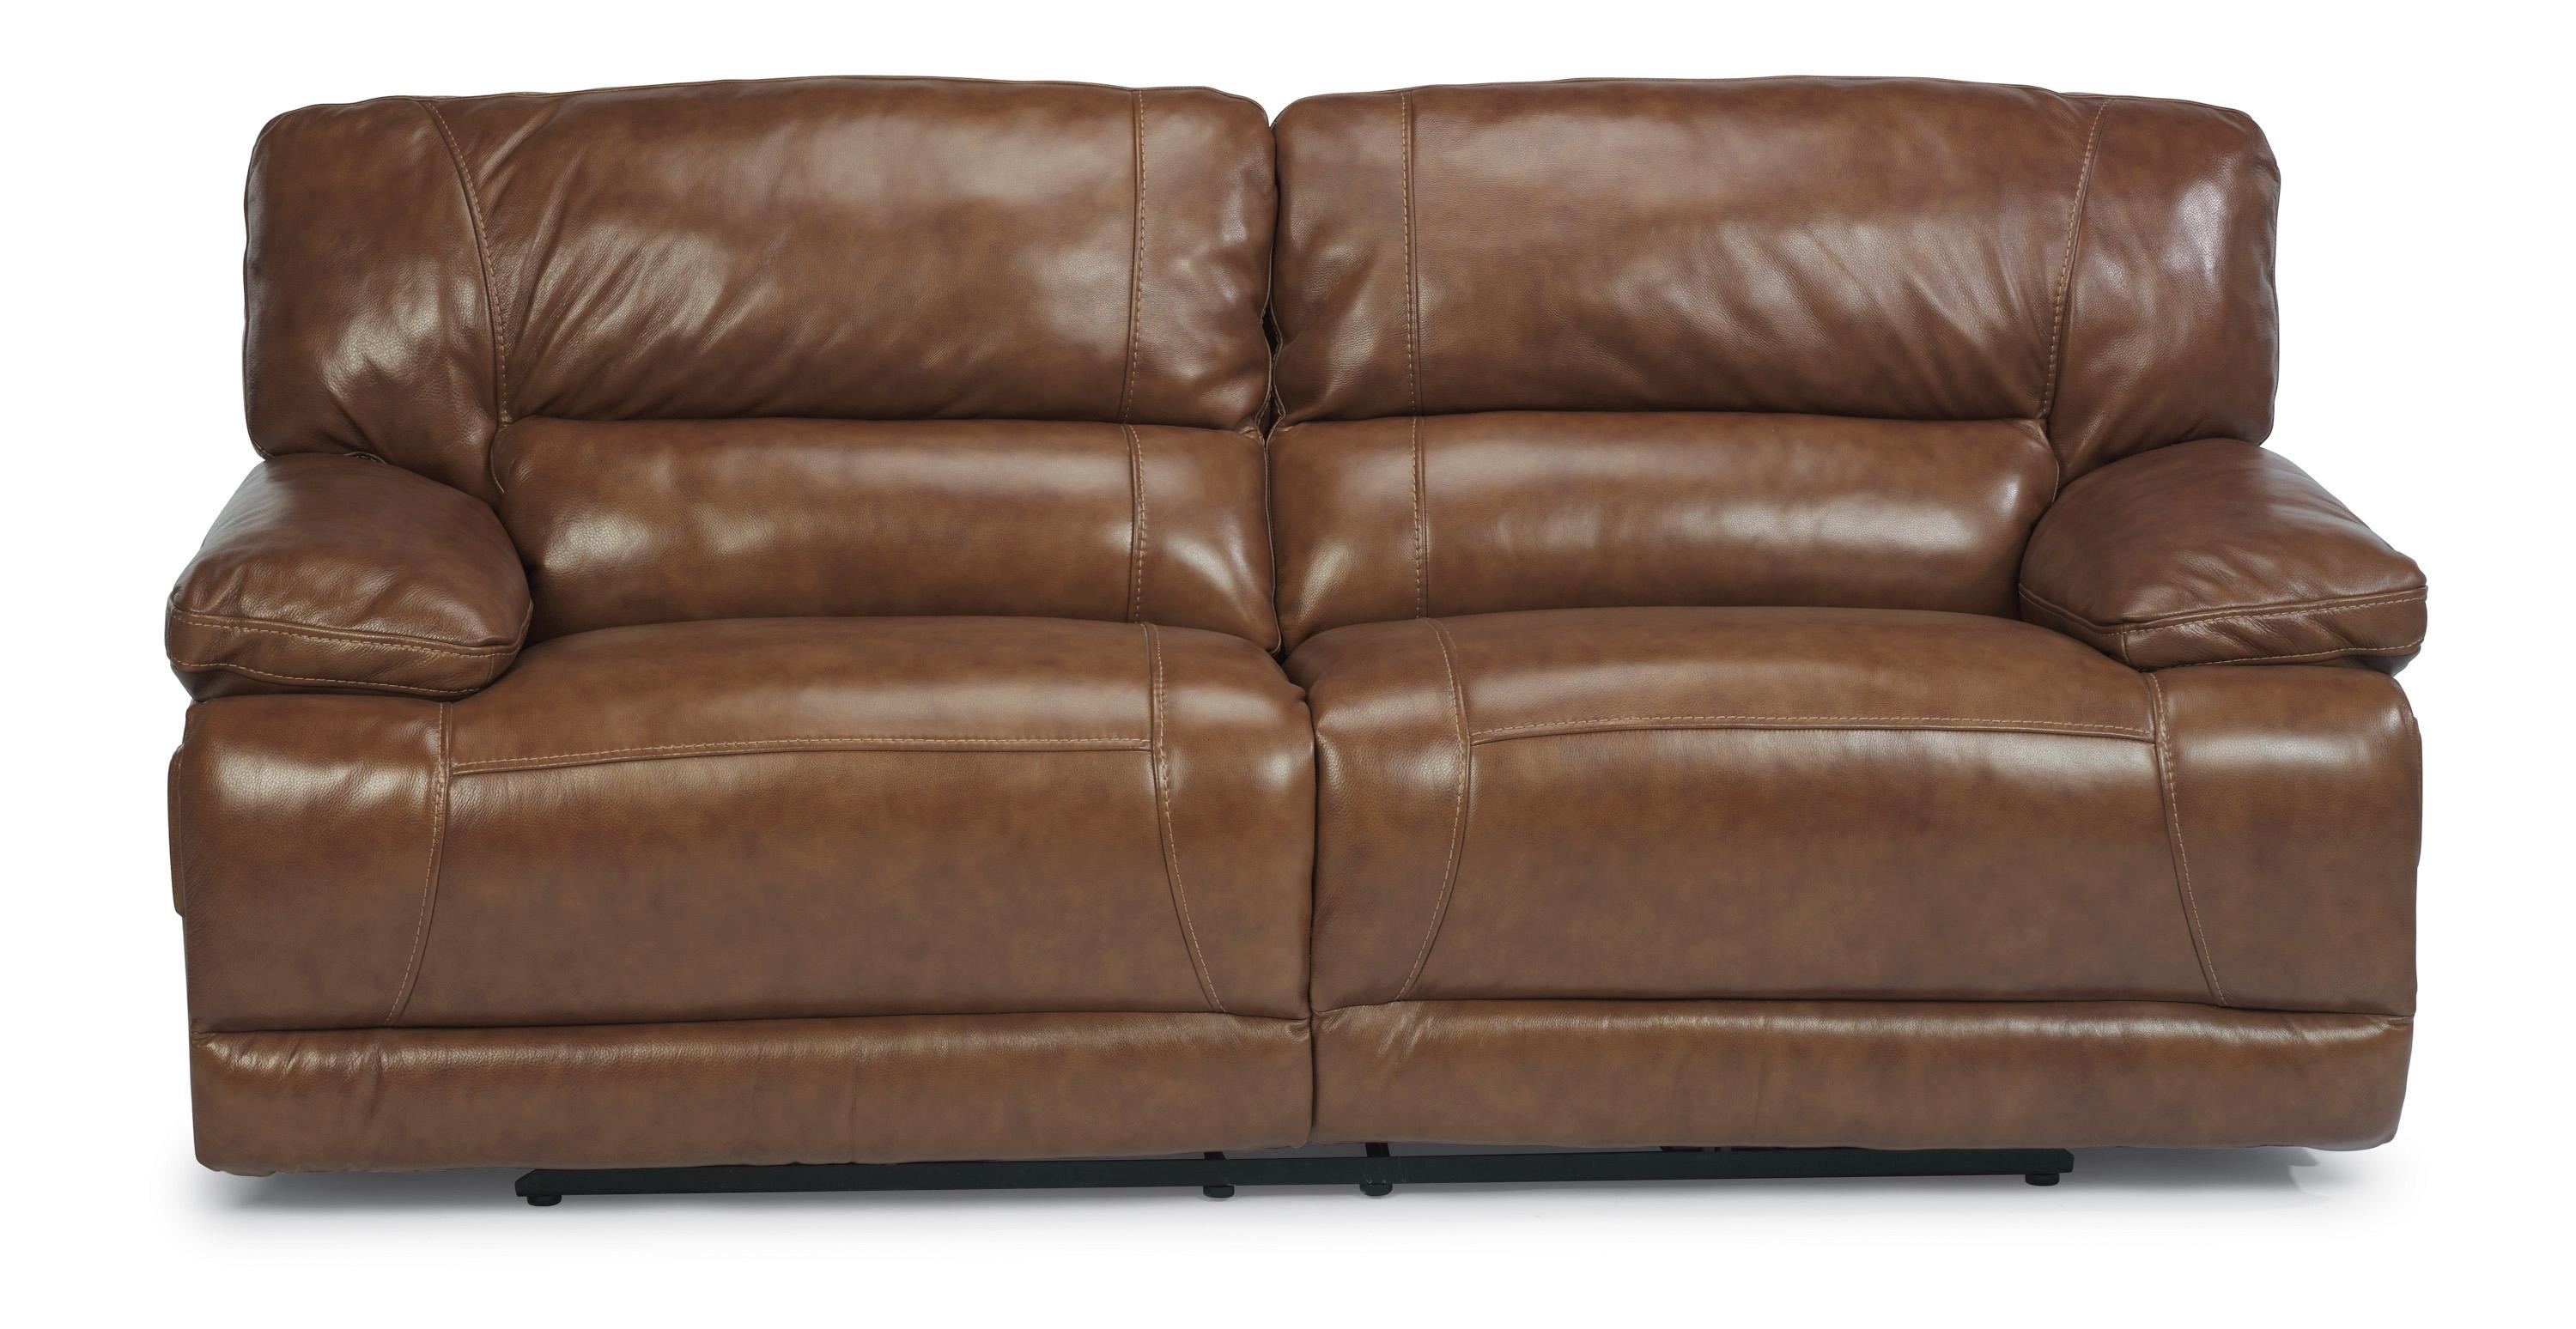 Flexsteel Fleet Street Power Reclining Sofa - Item Number: 1237-62P-794-72